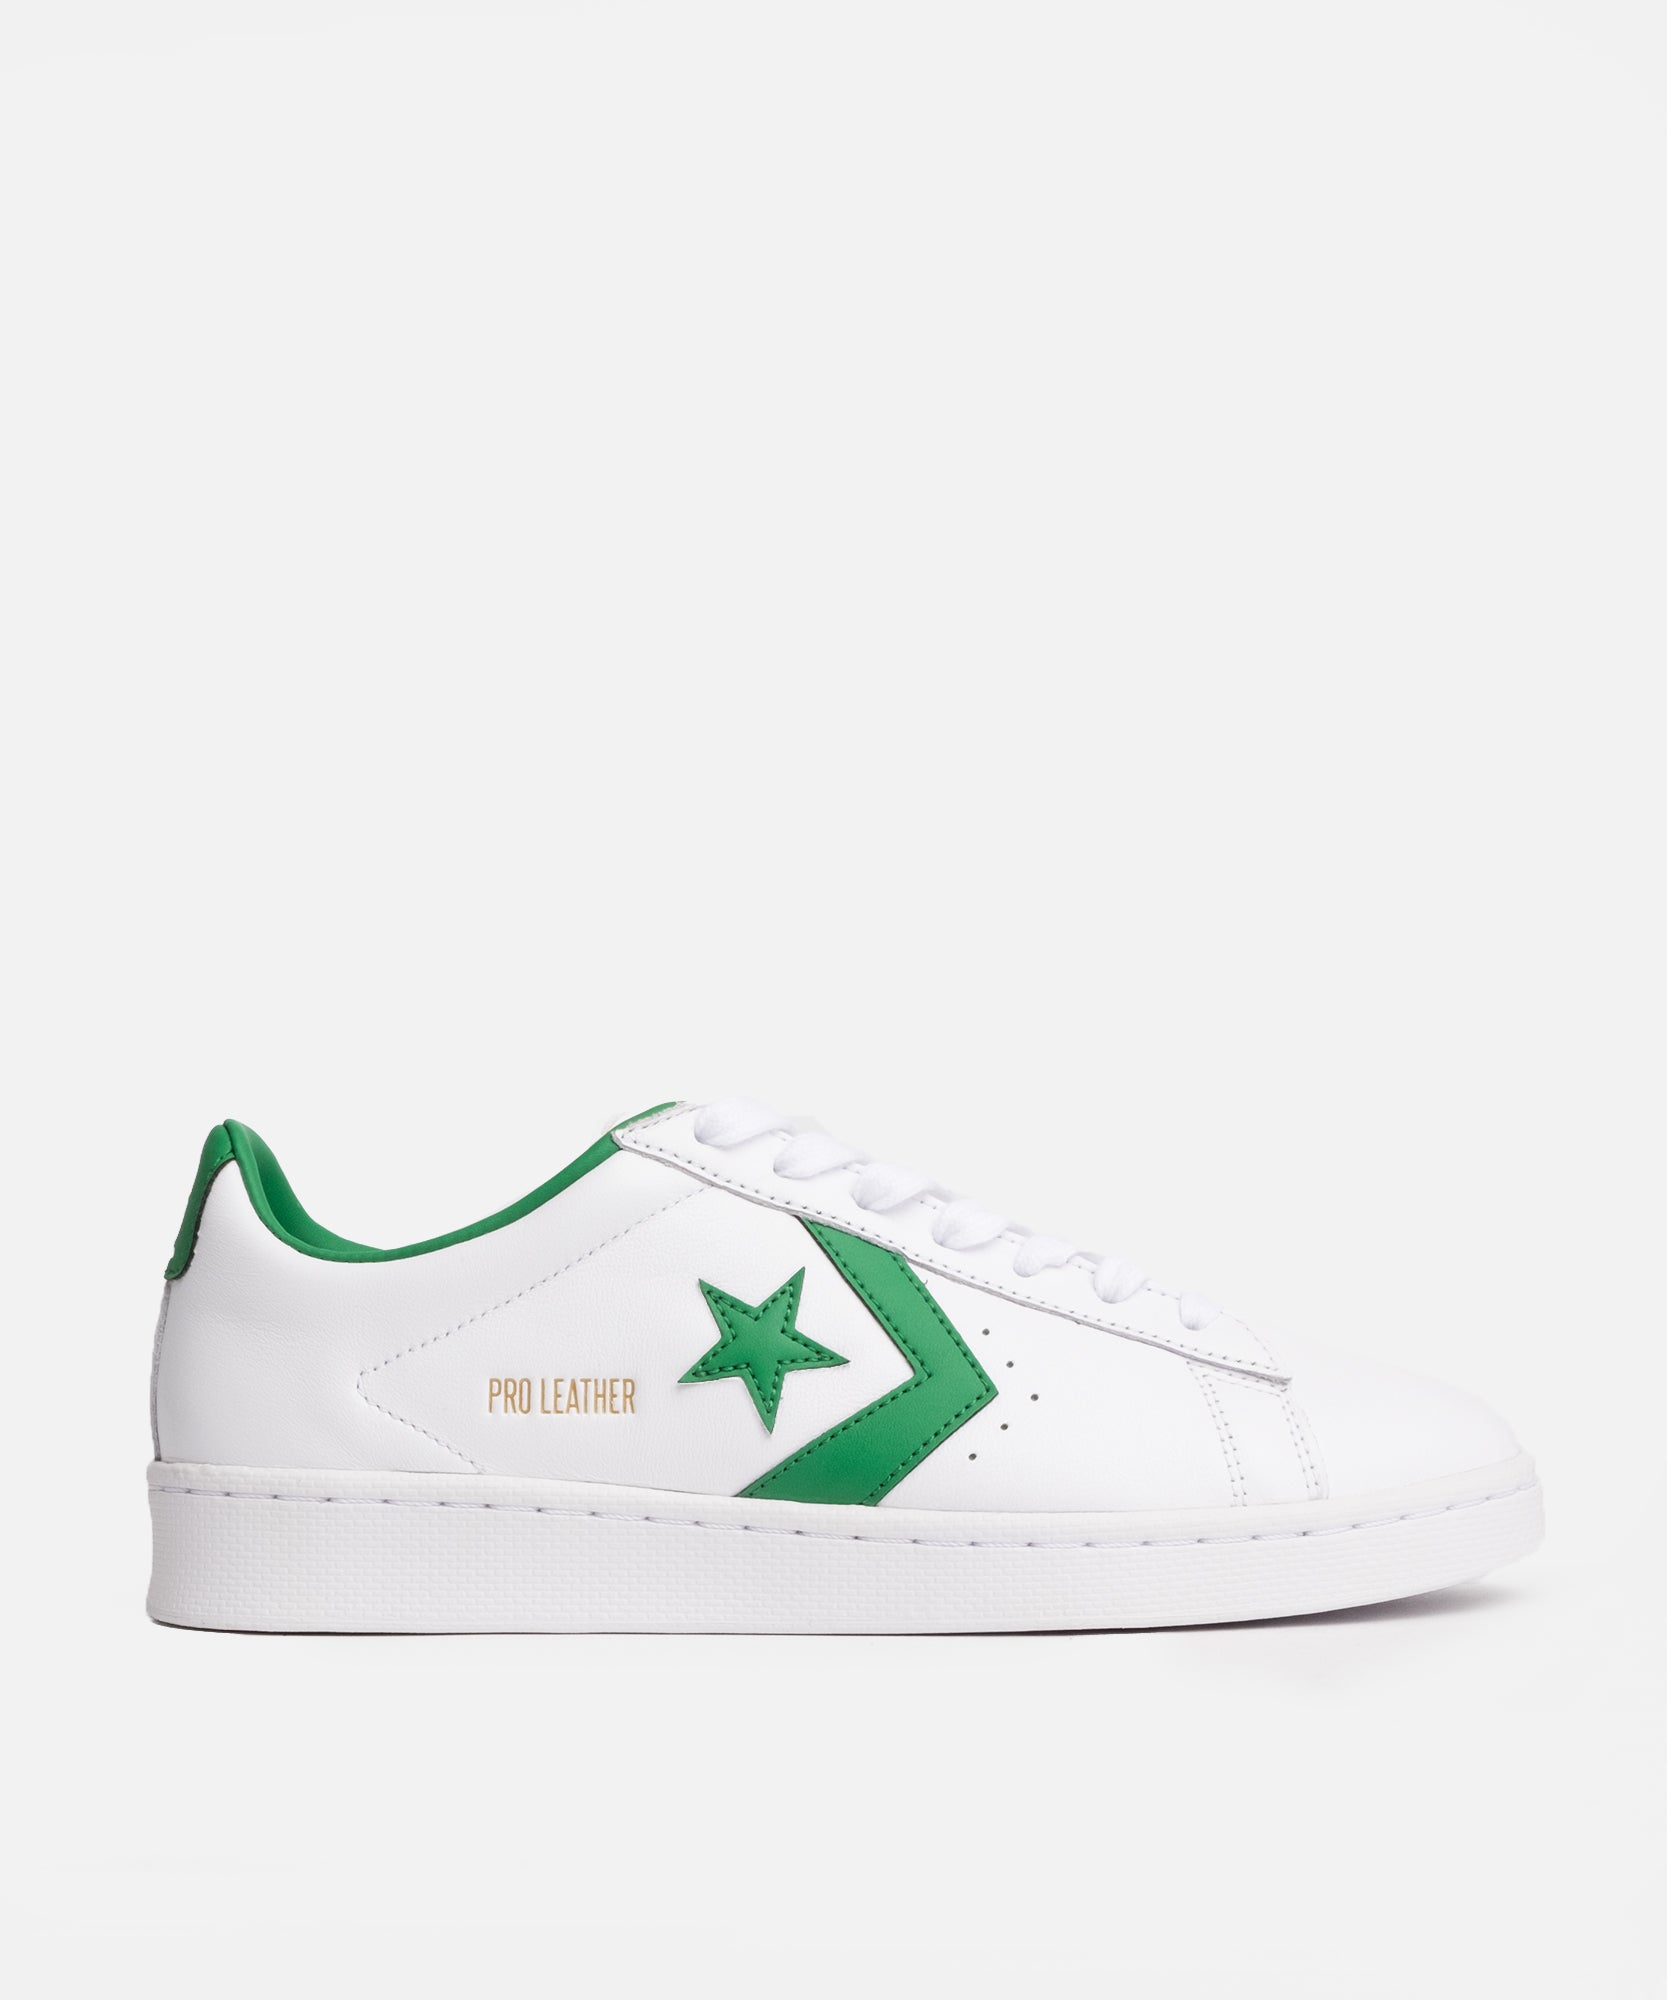 Converse Pro Leather OG OX (White/Green/White)